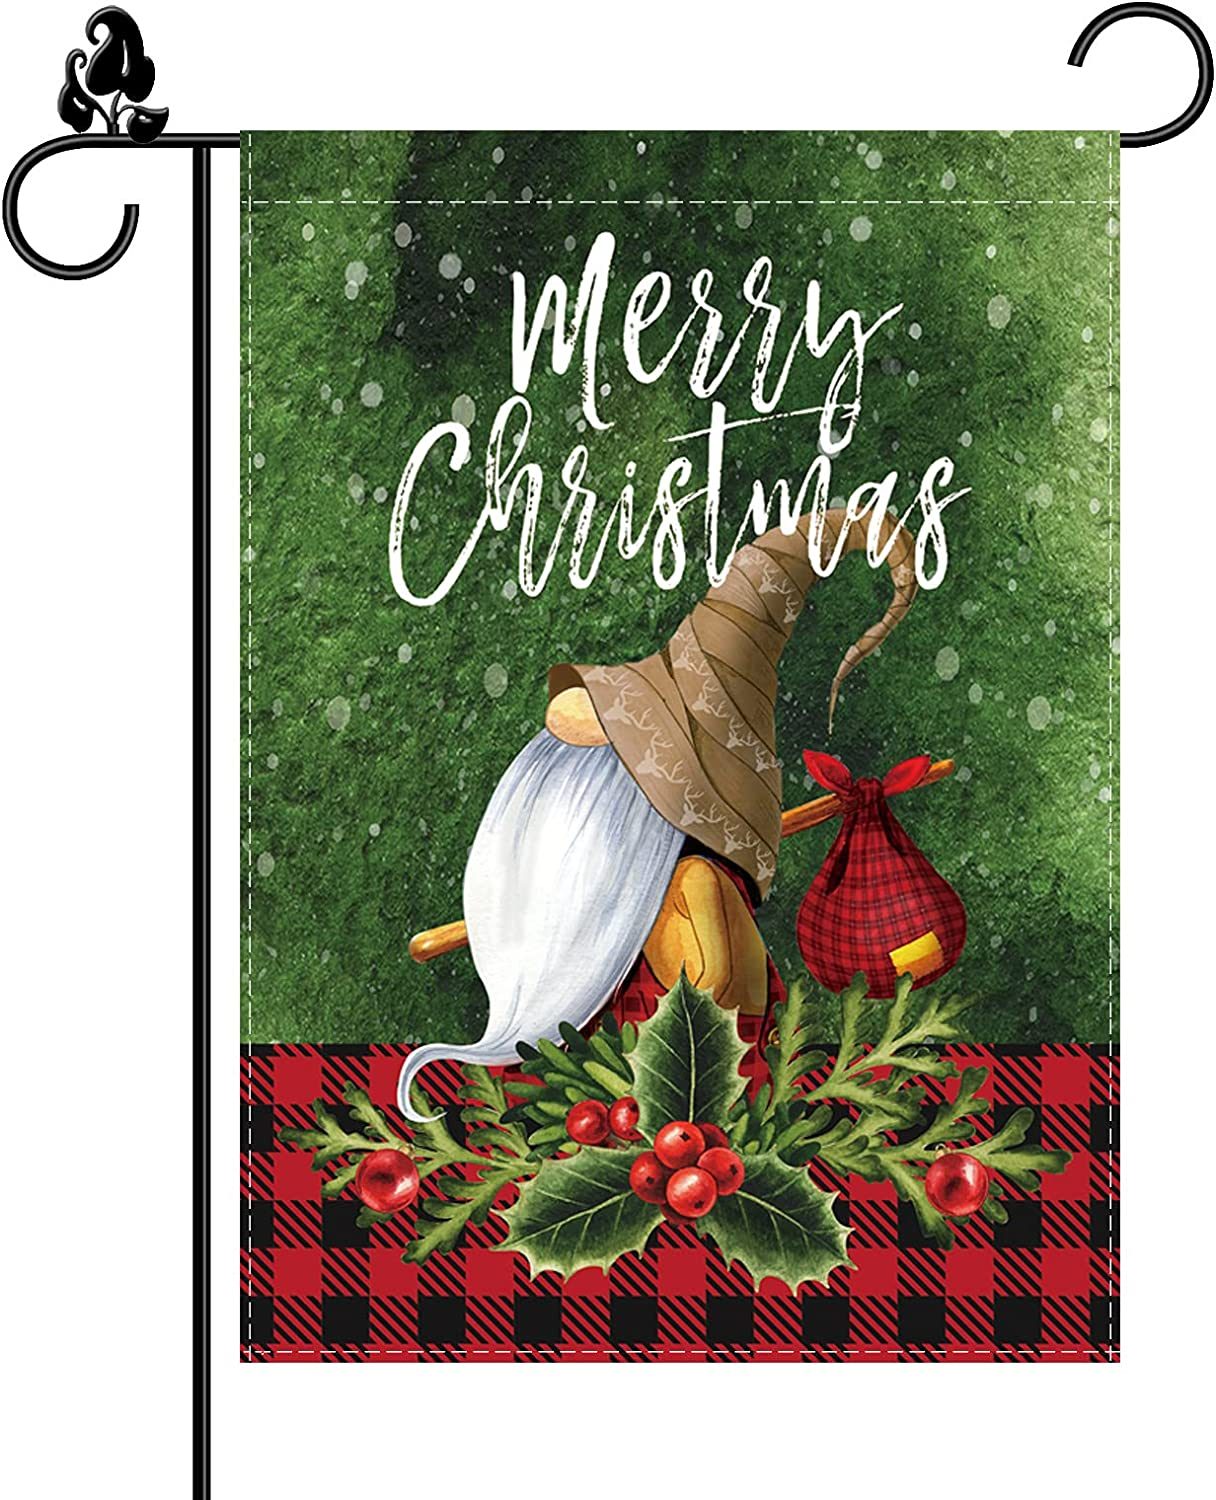 Merry Christmas Garden Flag Gnome Balls Red Buffalo Check Winter Double Sided Vertical Burlap 12.5 x 18 Inch Outdoor Decorations Holiday Yard Decor